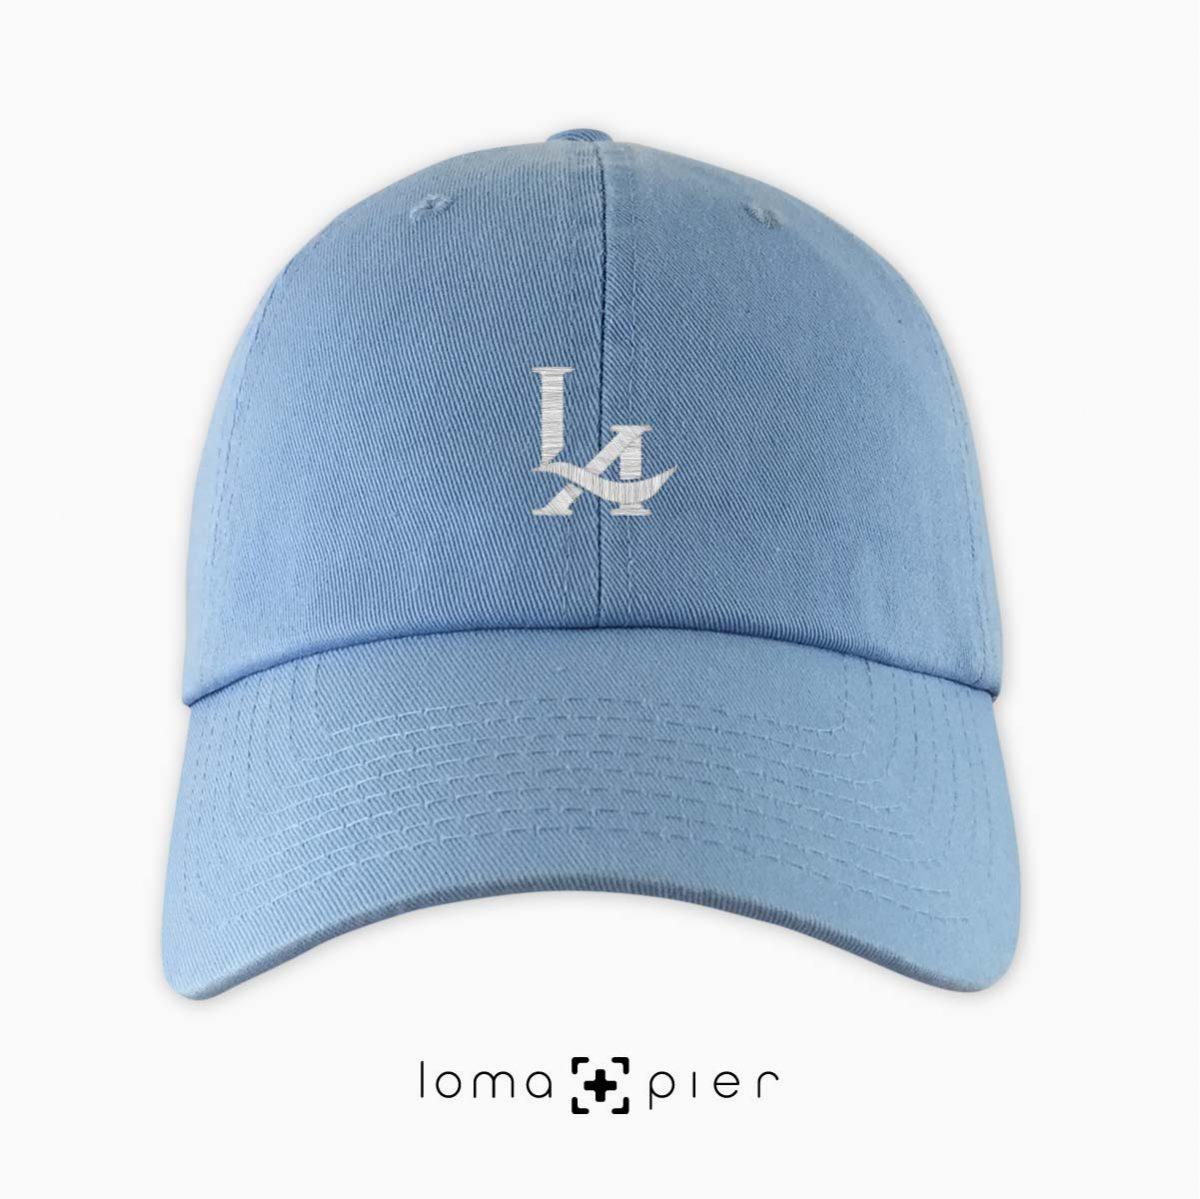 los angeles LA logo embroidered on a light blue unstructured dad hat by loma+pier hat store made in the USA